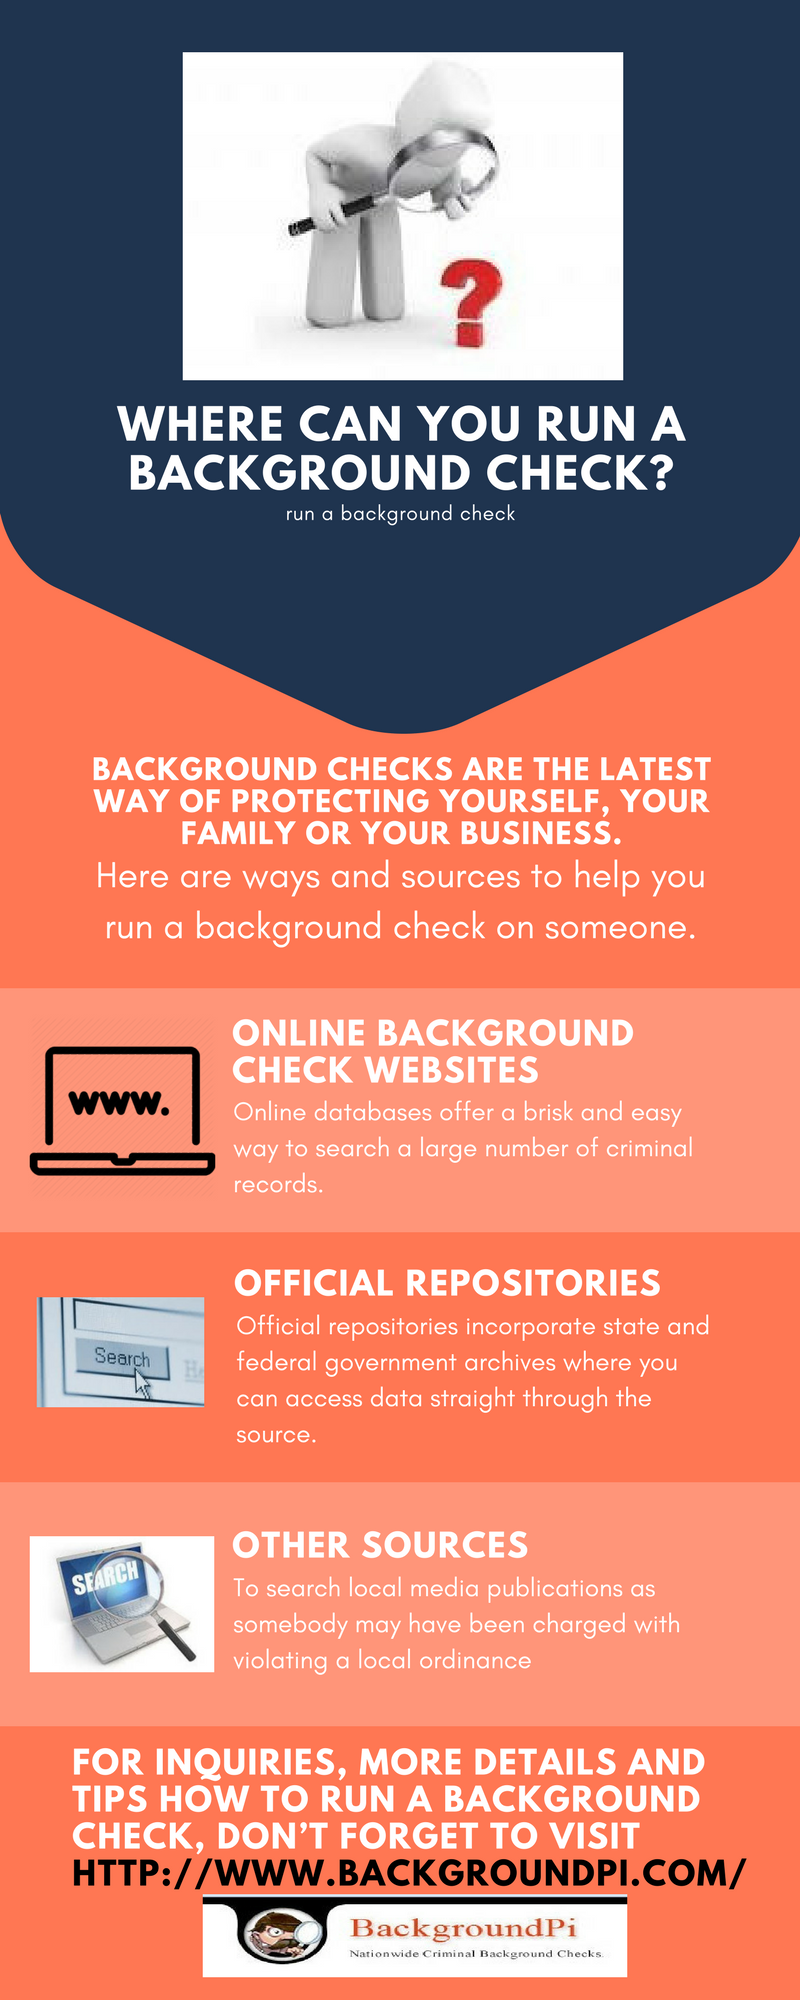 How Long Does It Take To Do A Background Check For A Government Job